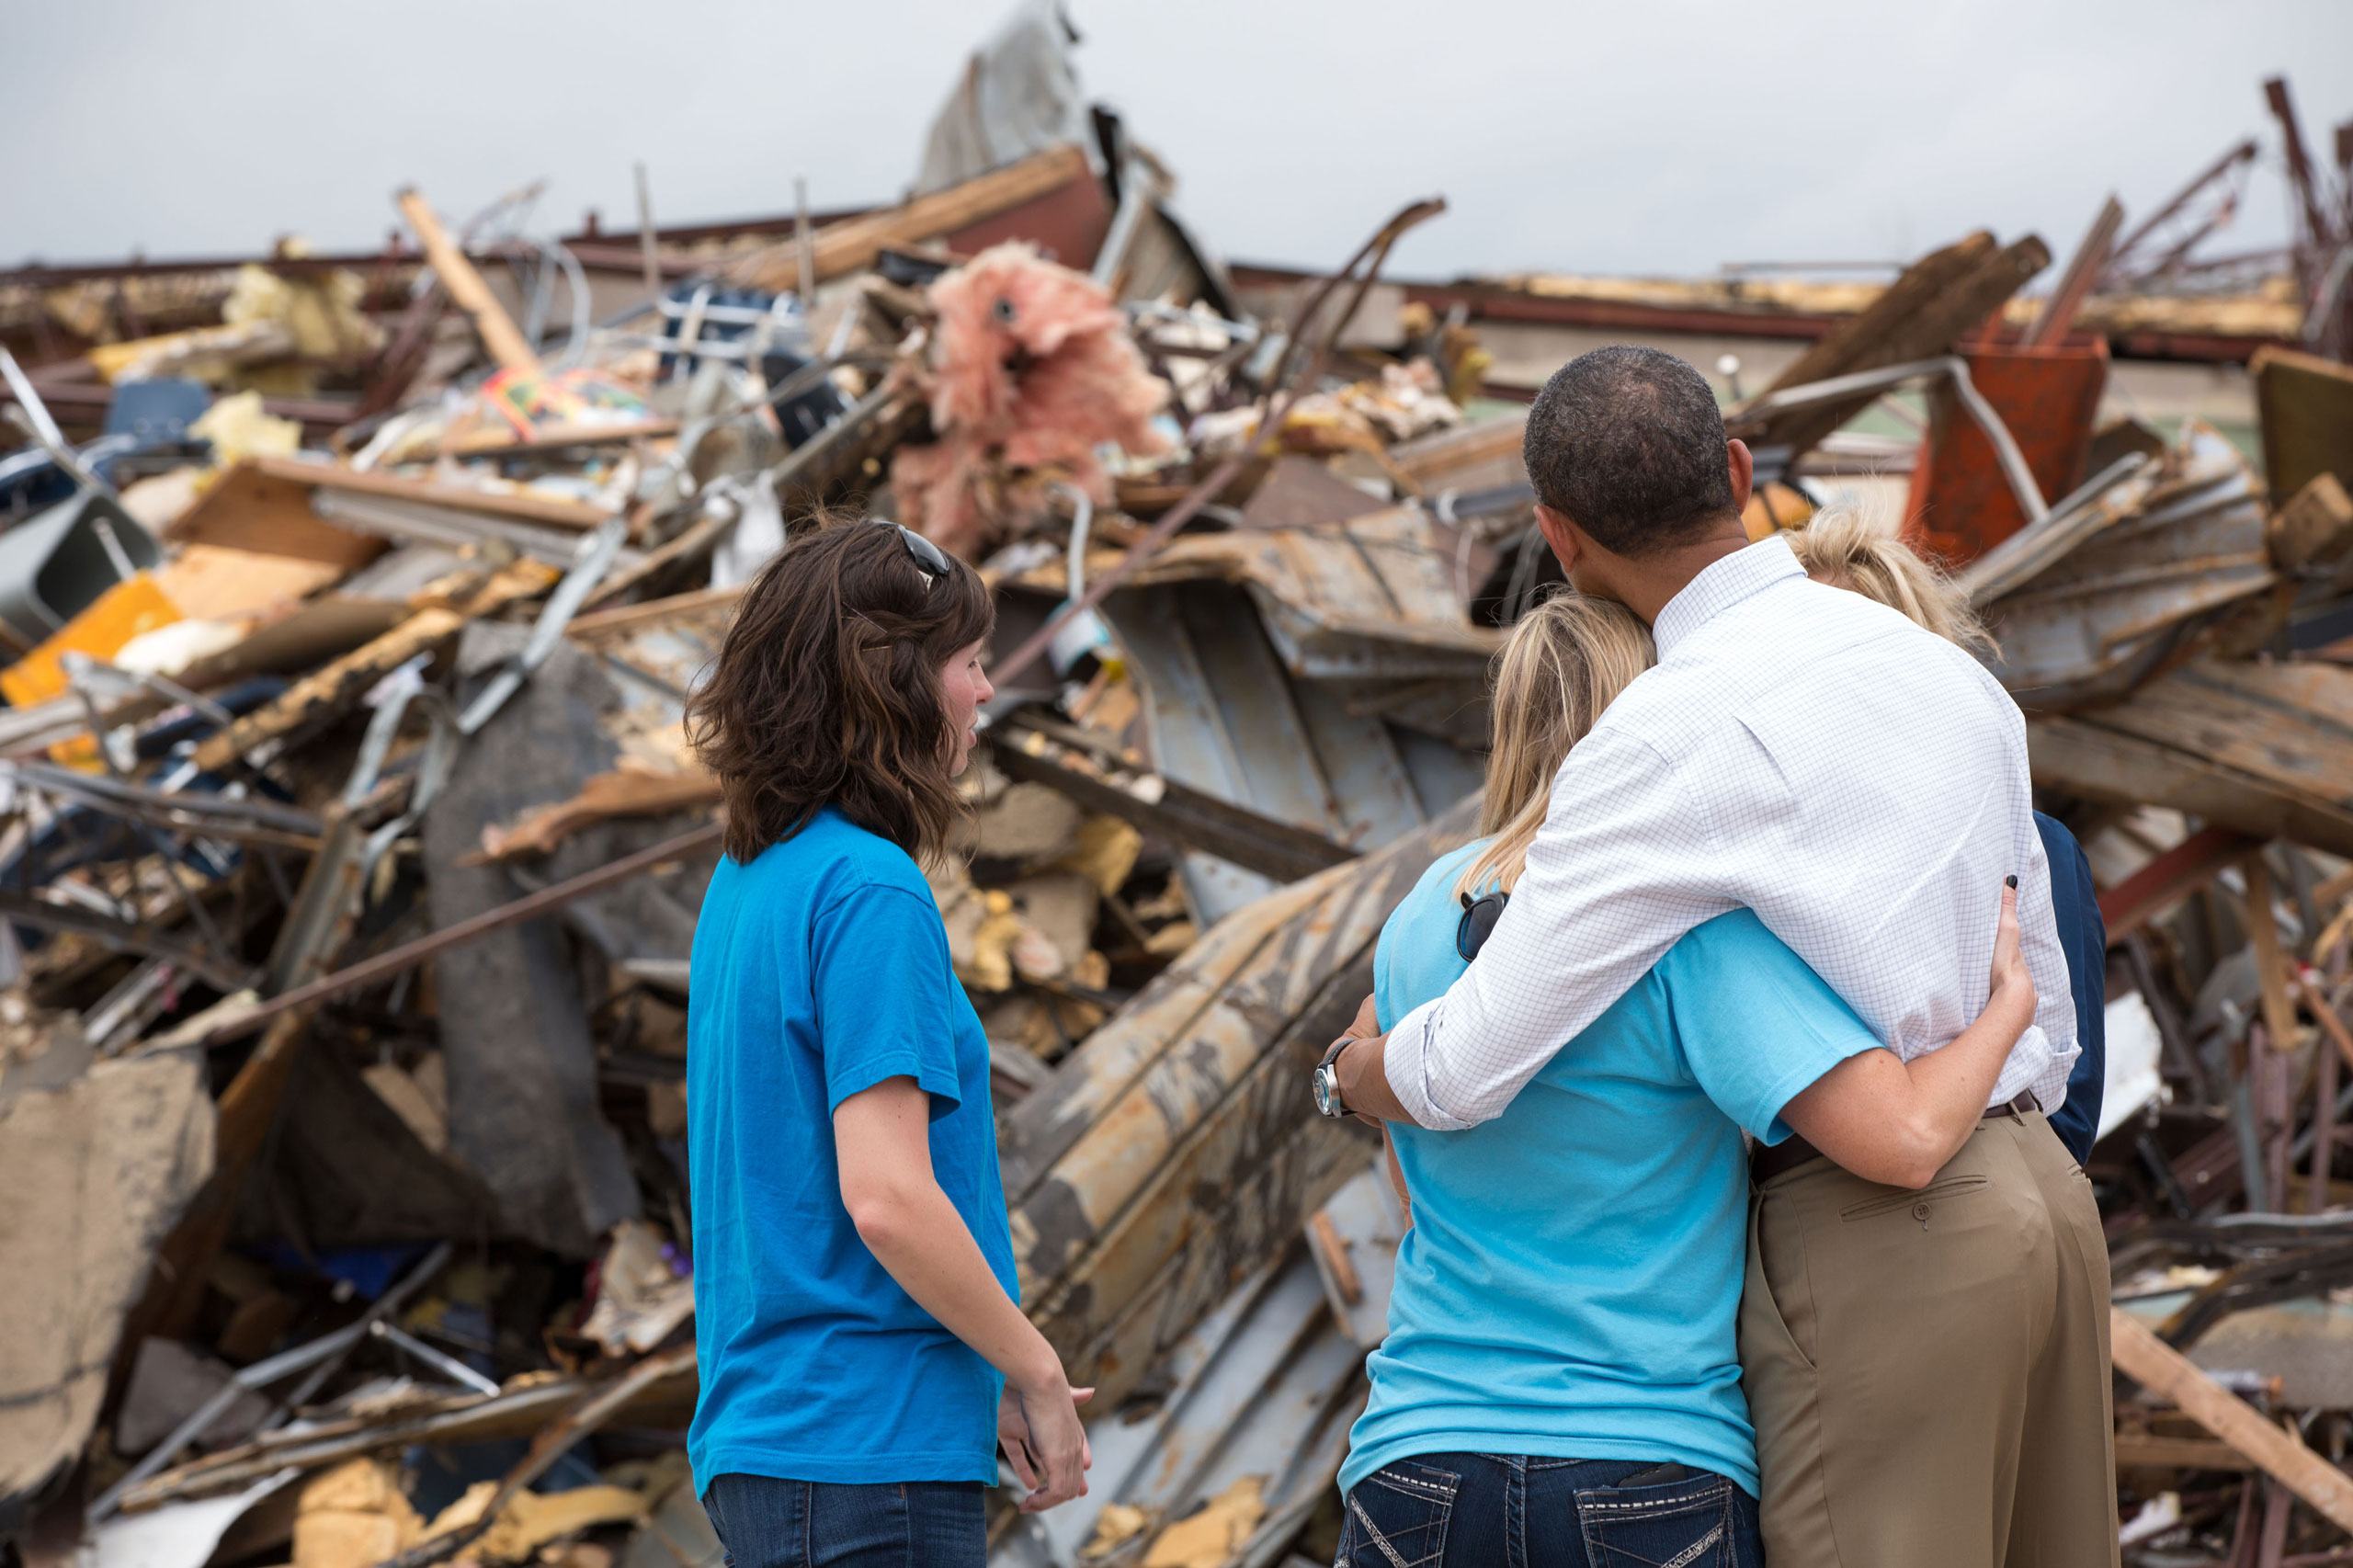 President Barack Obama hugs Amy Simpson, principal of Plaza Towers Elementary School, outside what remains of the school following a tornado in Moore, Okla., May 26, 2013.